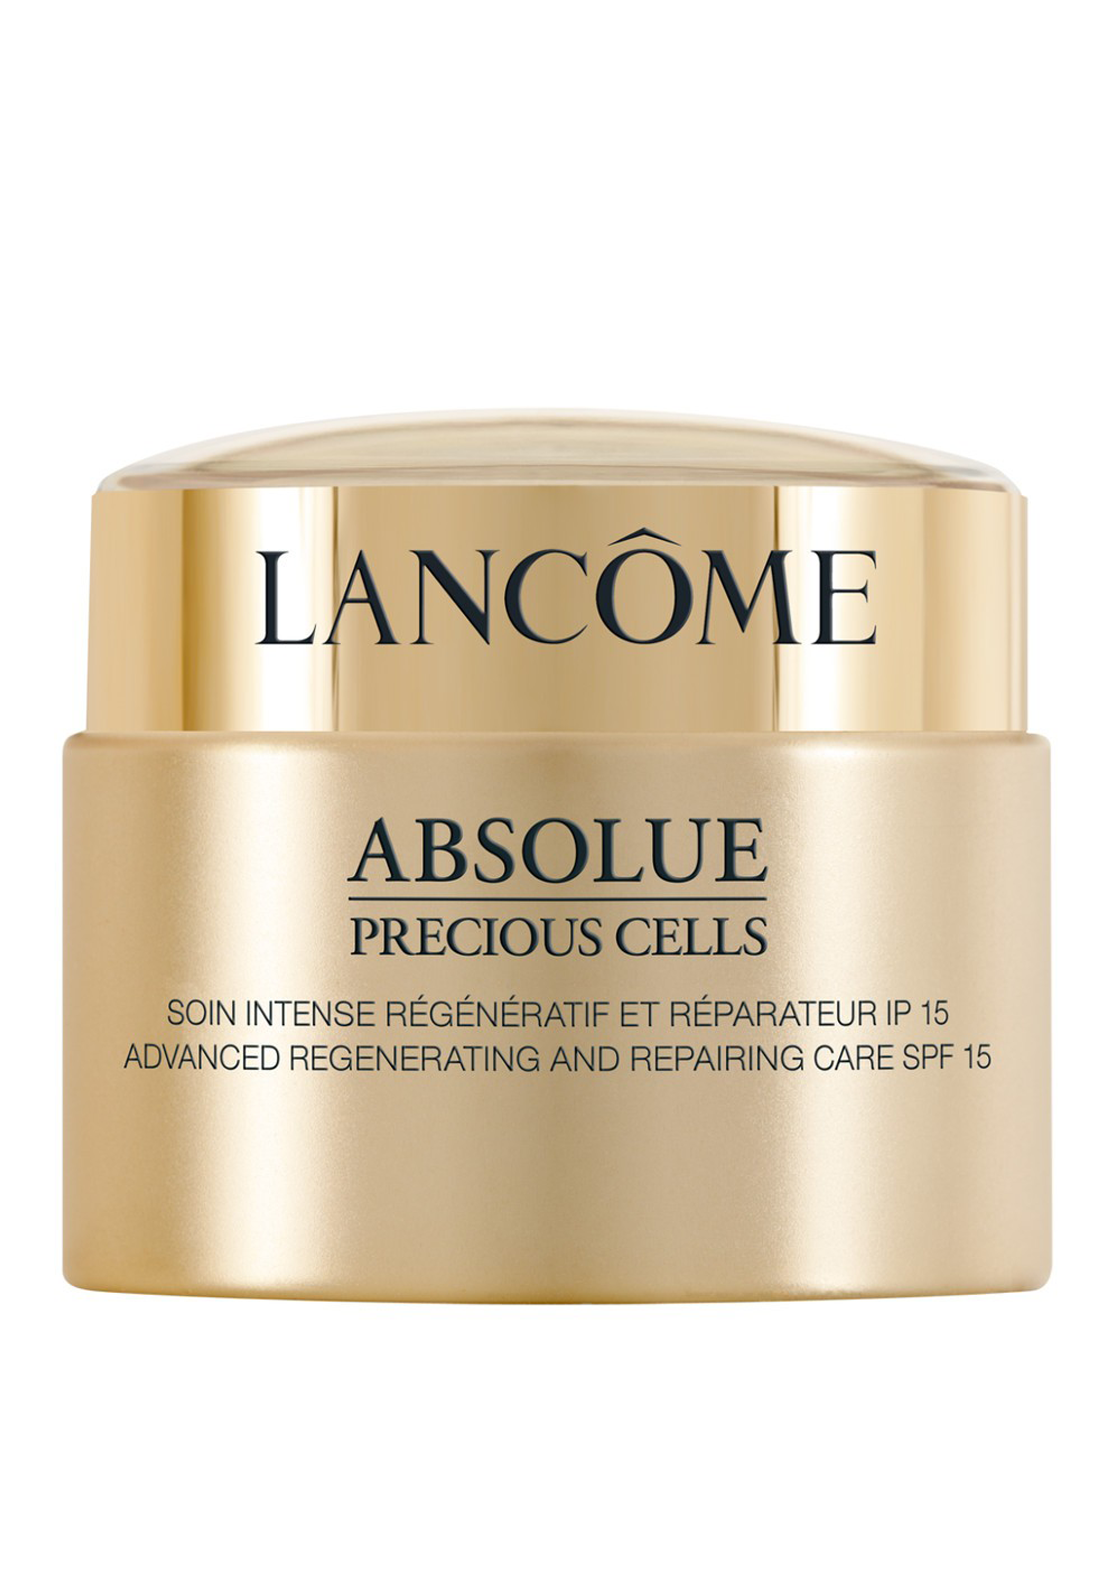 Lancome Absolue Precious Cells with Regenerating and Replenishing Care with SPF15, 50ml